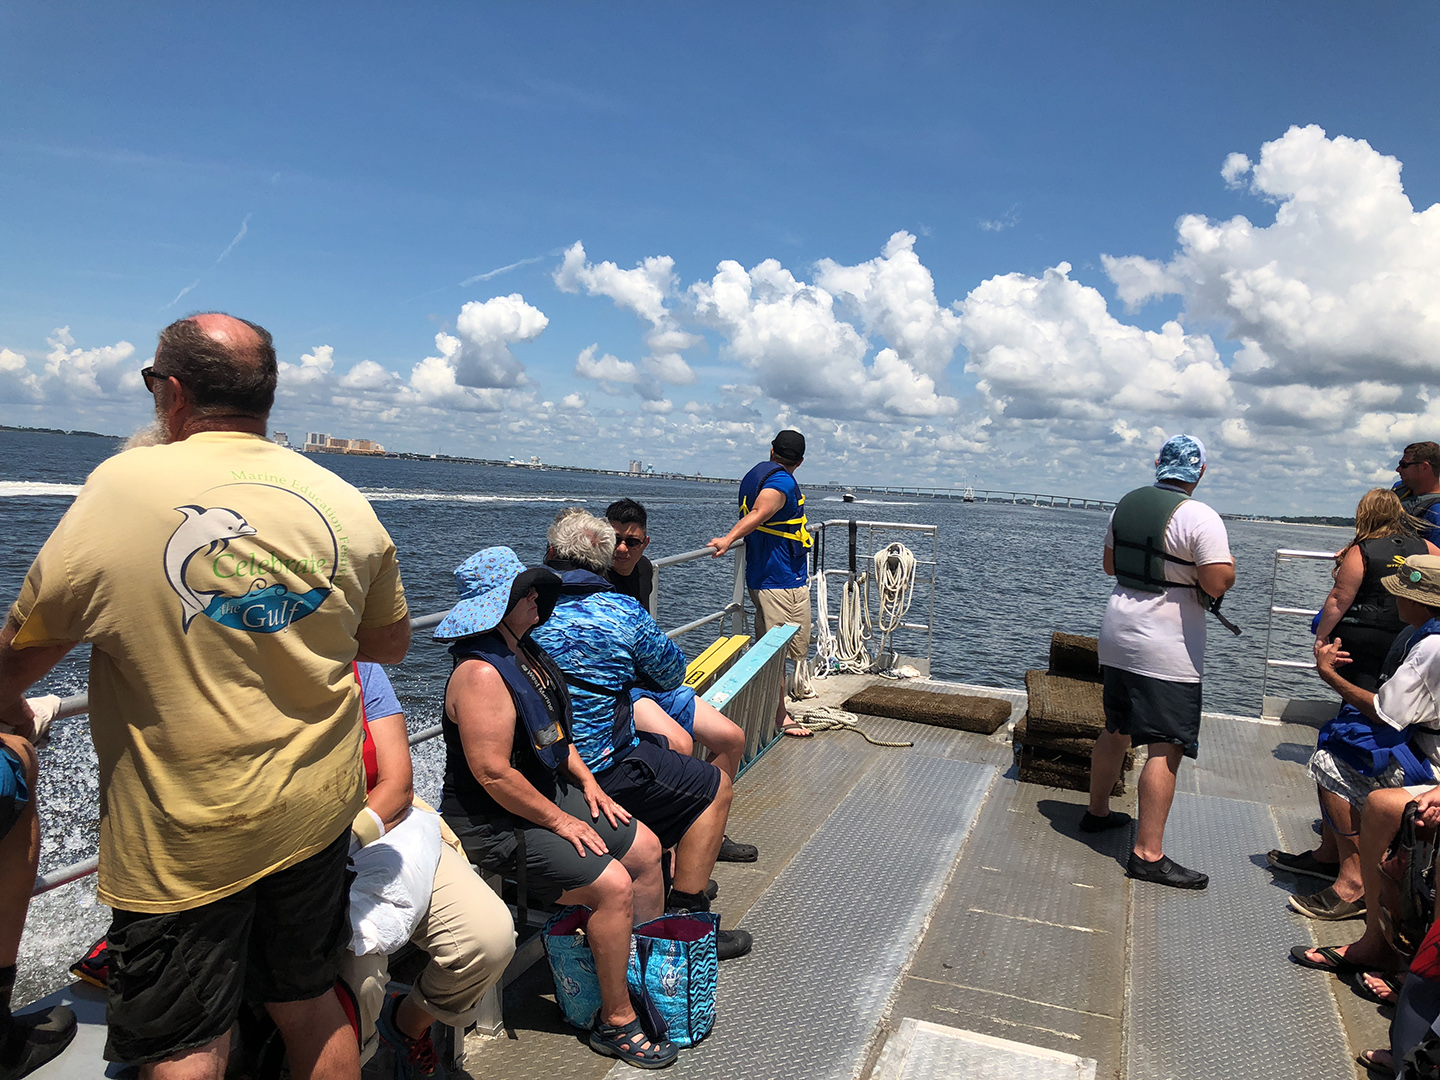 Students in the Oyster Fundamentals class in Mississippi return to Ocean Springs Harbor after training near Deer Island. (Photo by Rusty Grice)